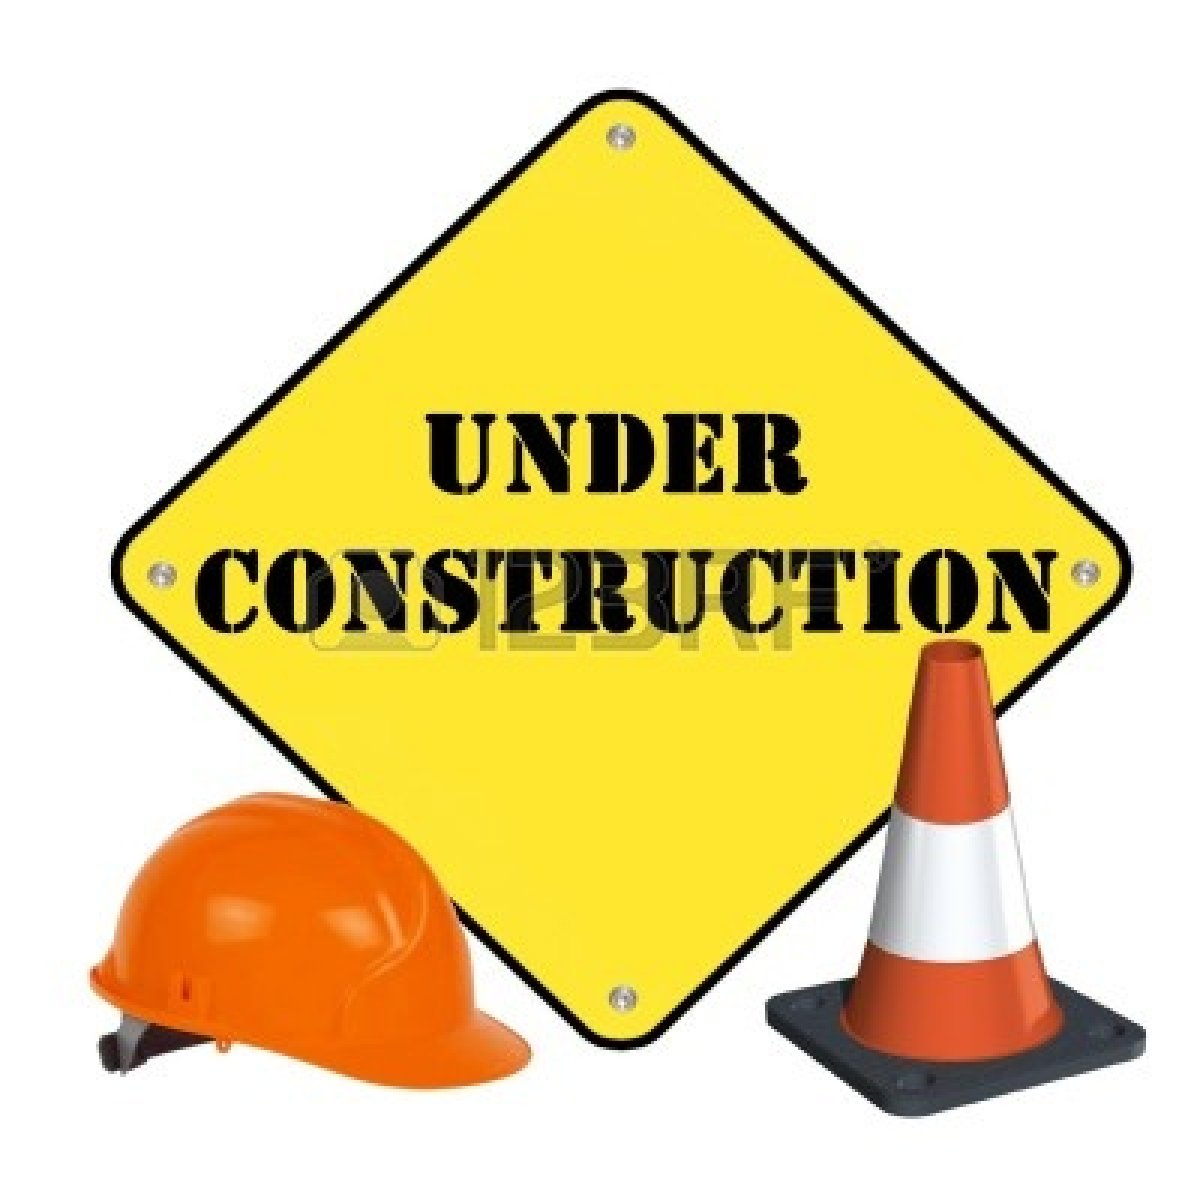 Under construction clipart free images 5